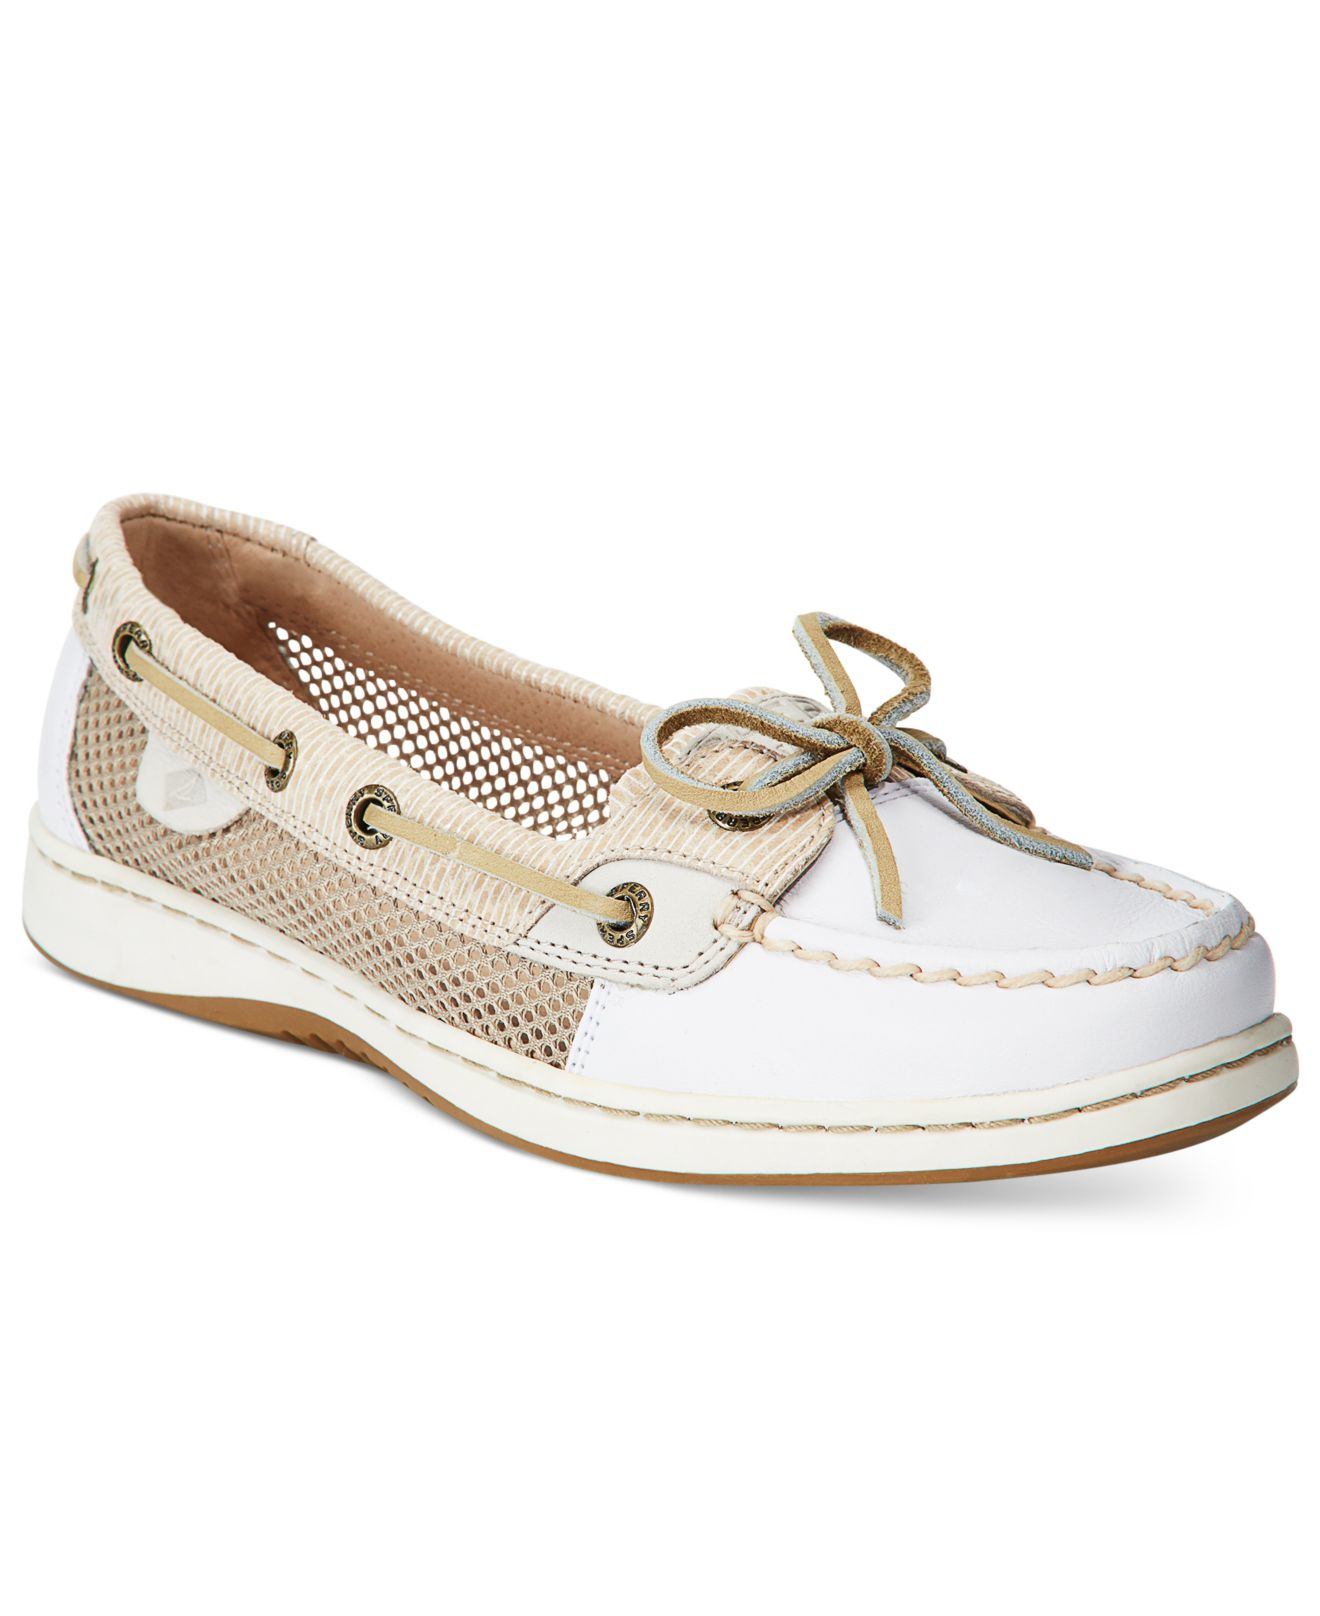 Lyst Sperry top sider Women s Angelfish Boat Shoes in White